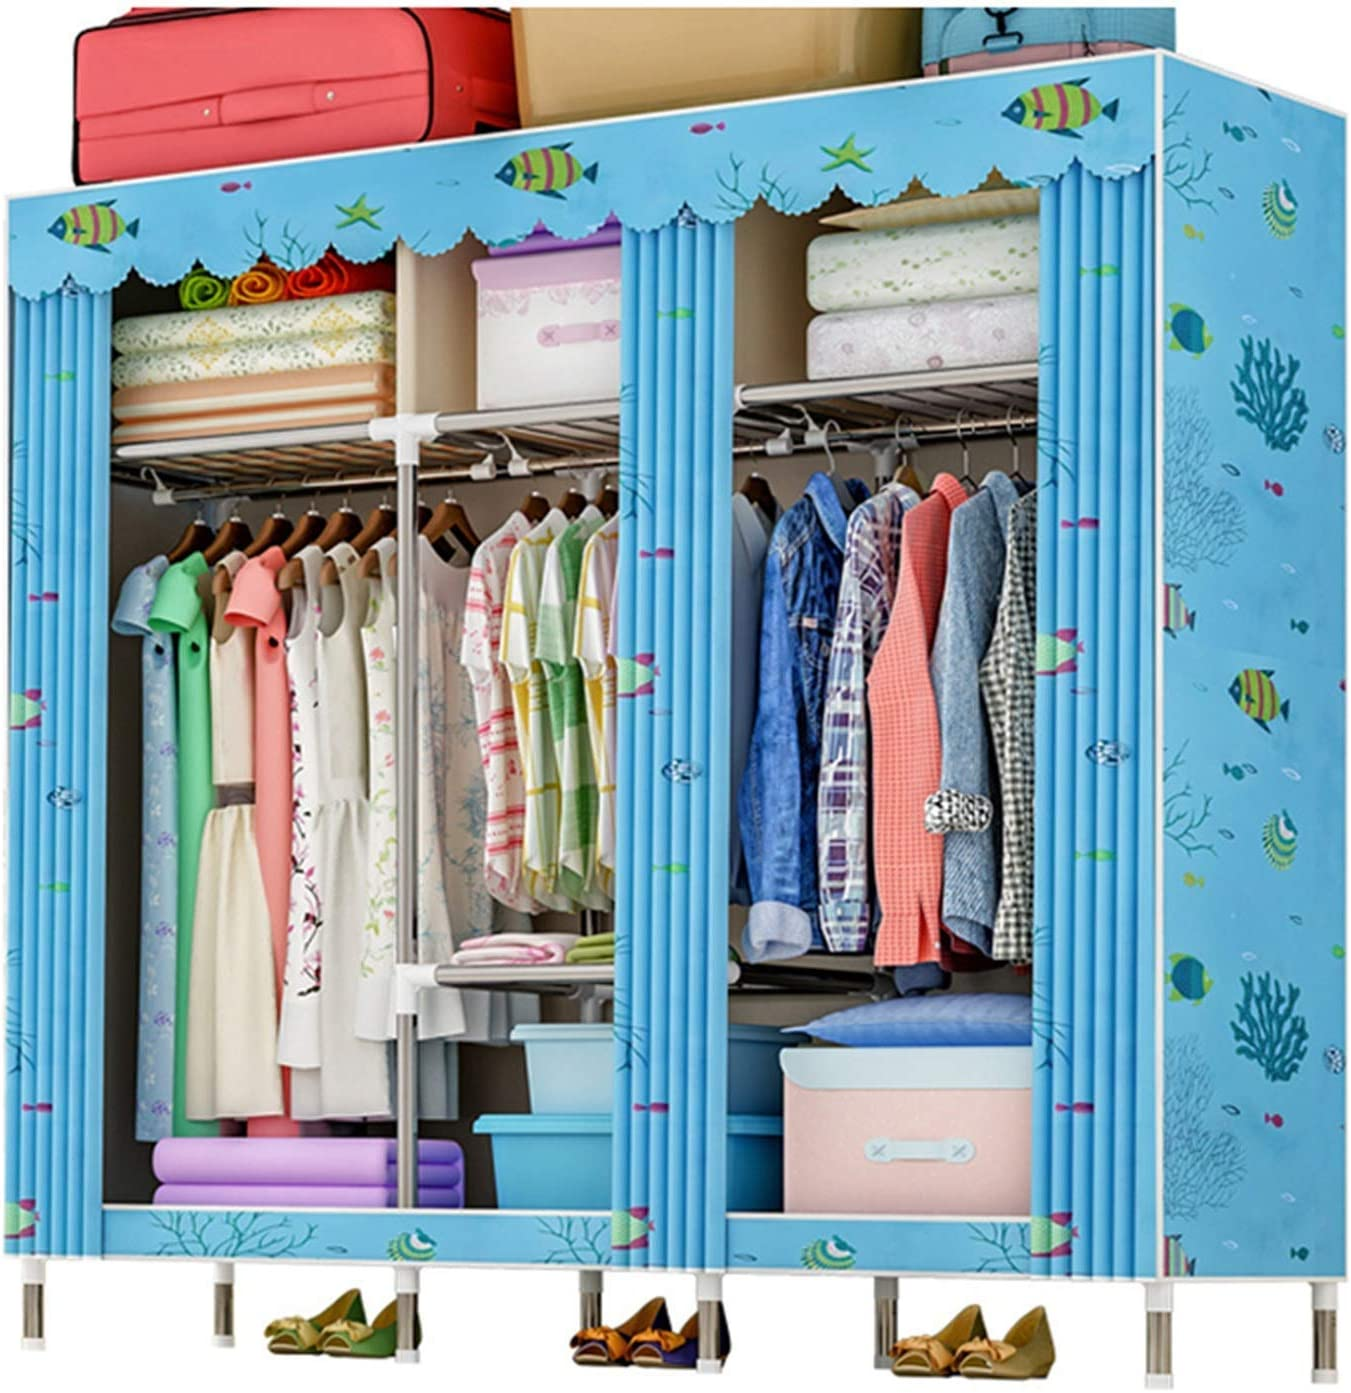 N/Z Home Equipment Canvas Wardrobe Wardrobe Armoire Closet Clothes Storage Rack 7 Shelves 4 Side Pockets 3 Hanging Rail Quick and Easy to Assemble (Color : D4 Size : 167X46X168cm)